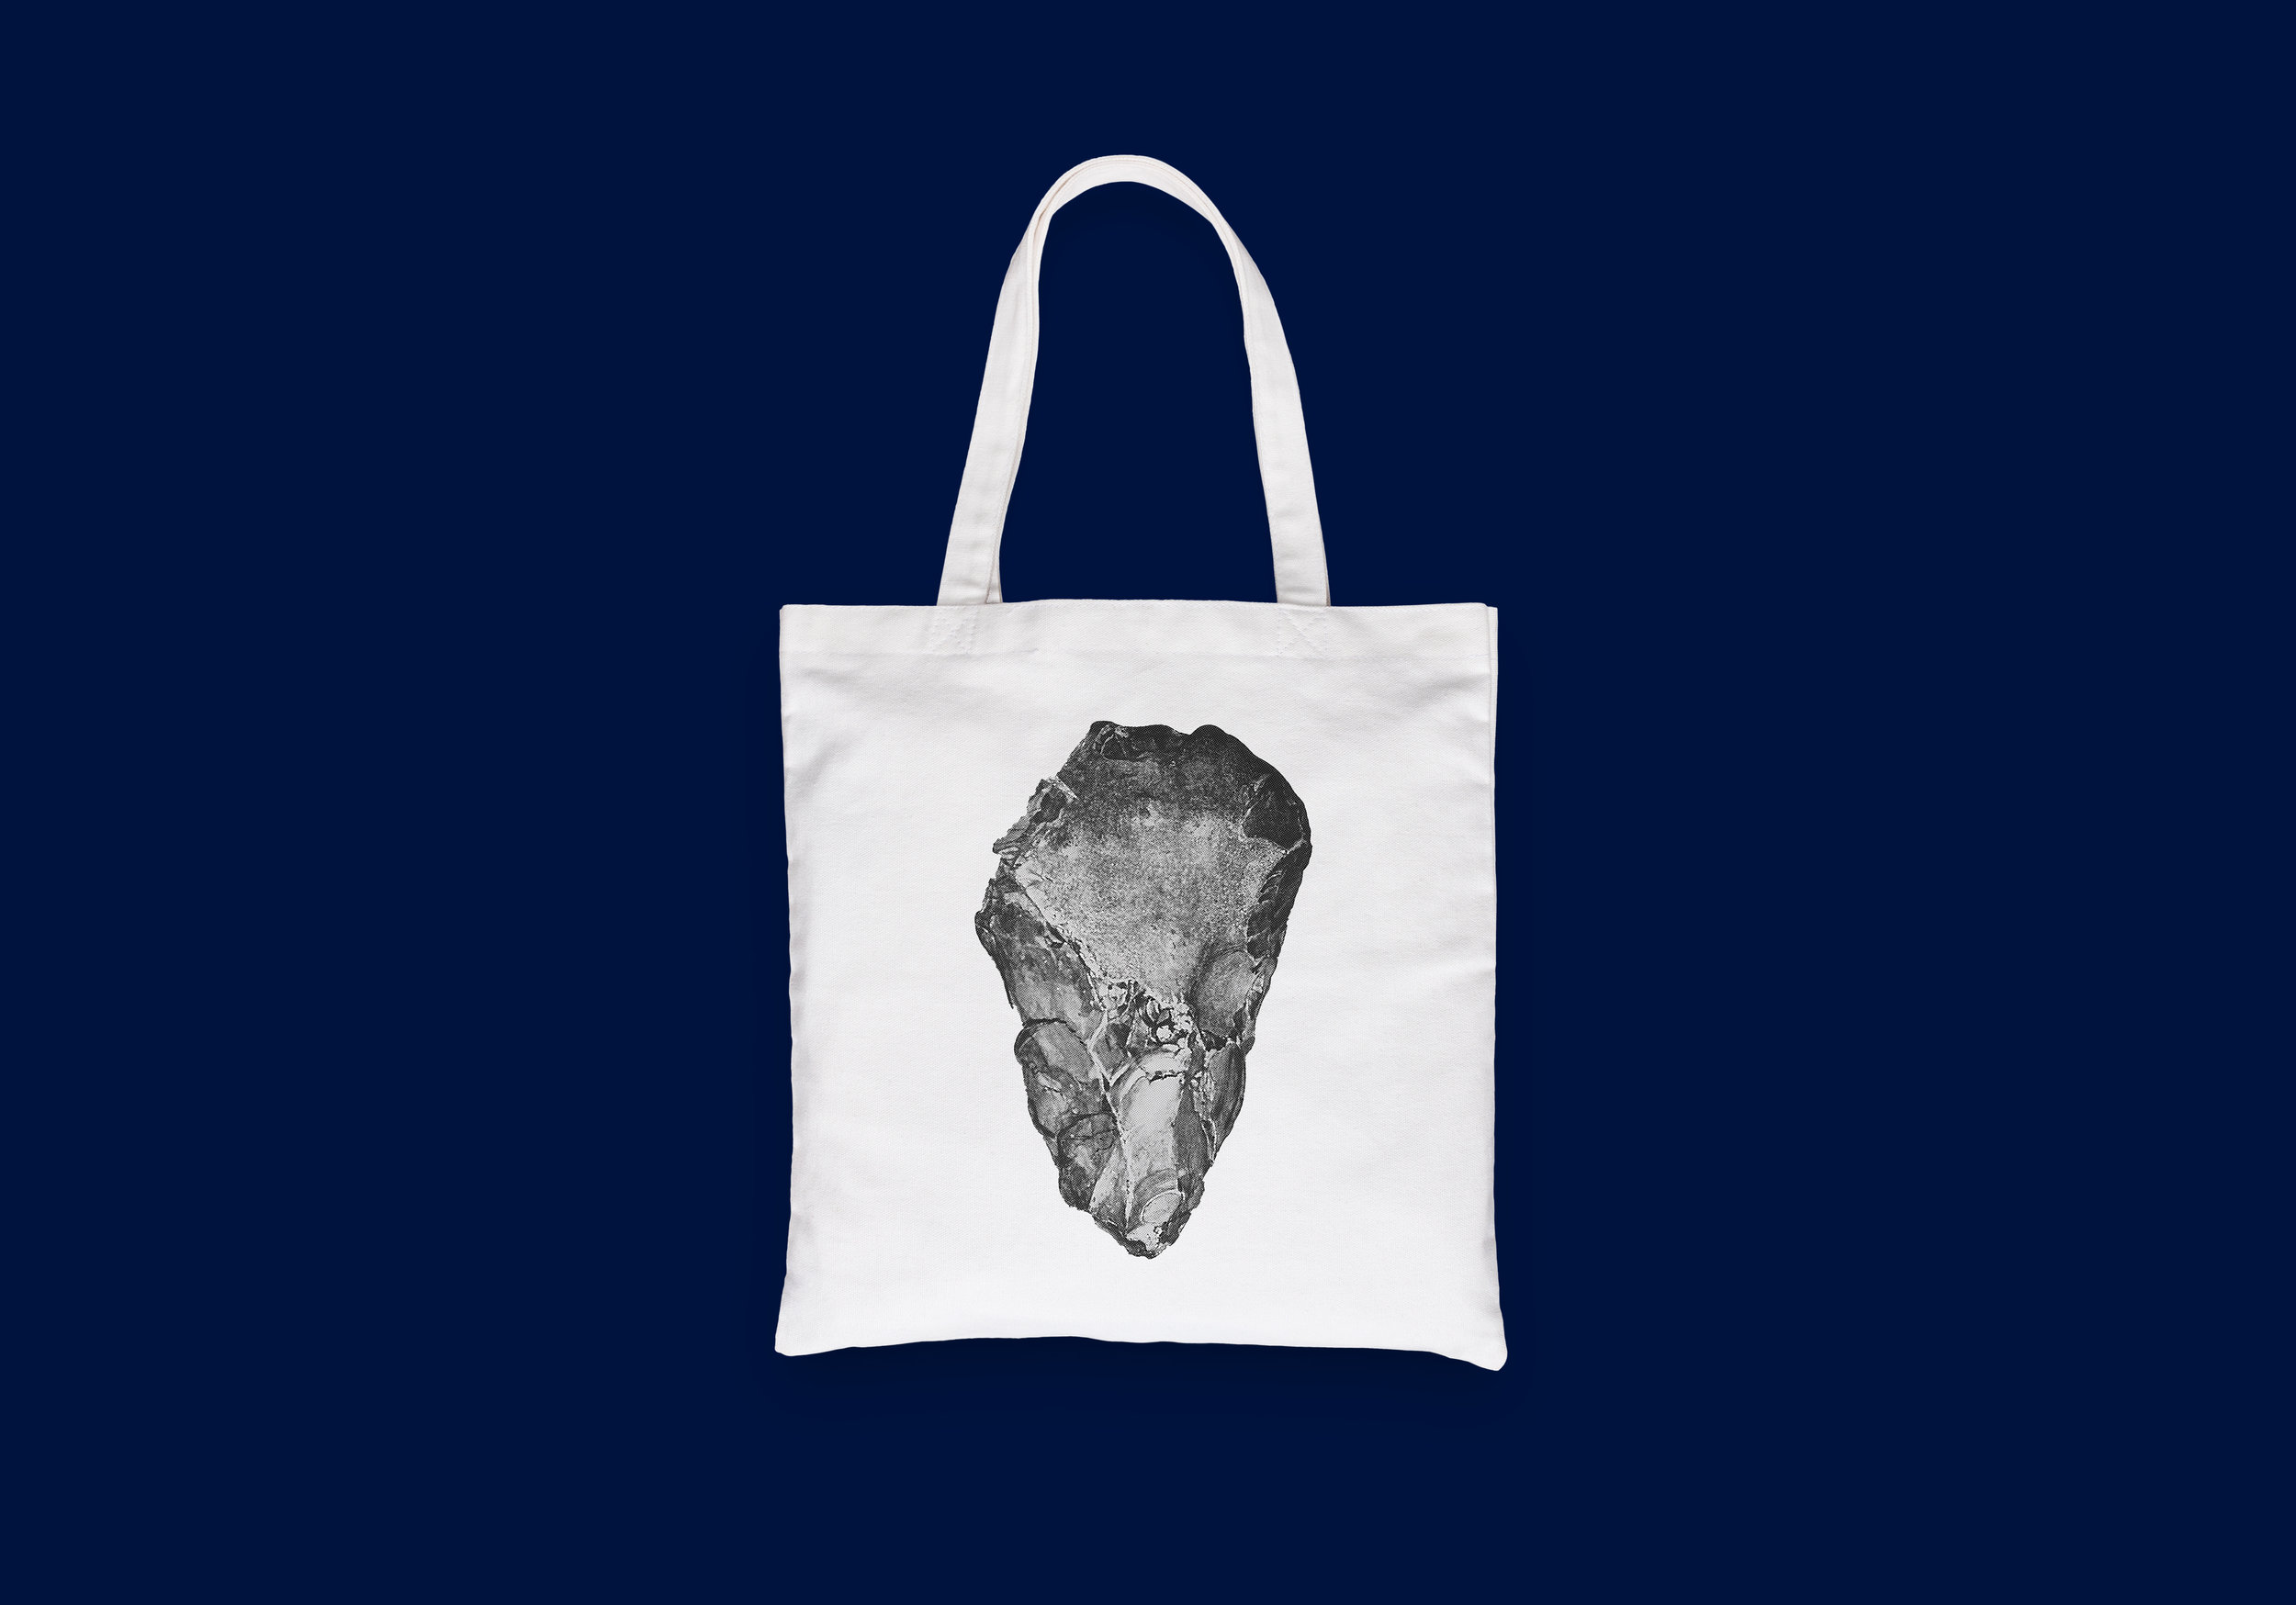 Replika_totebag.jpg